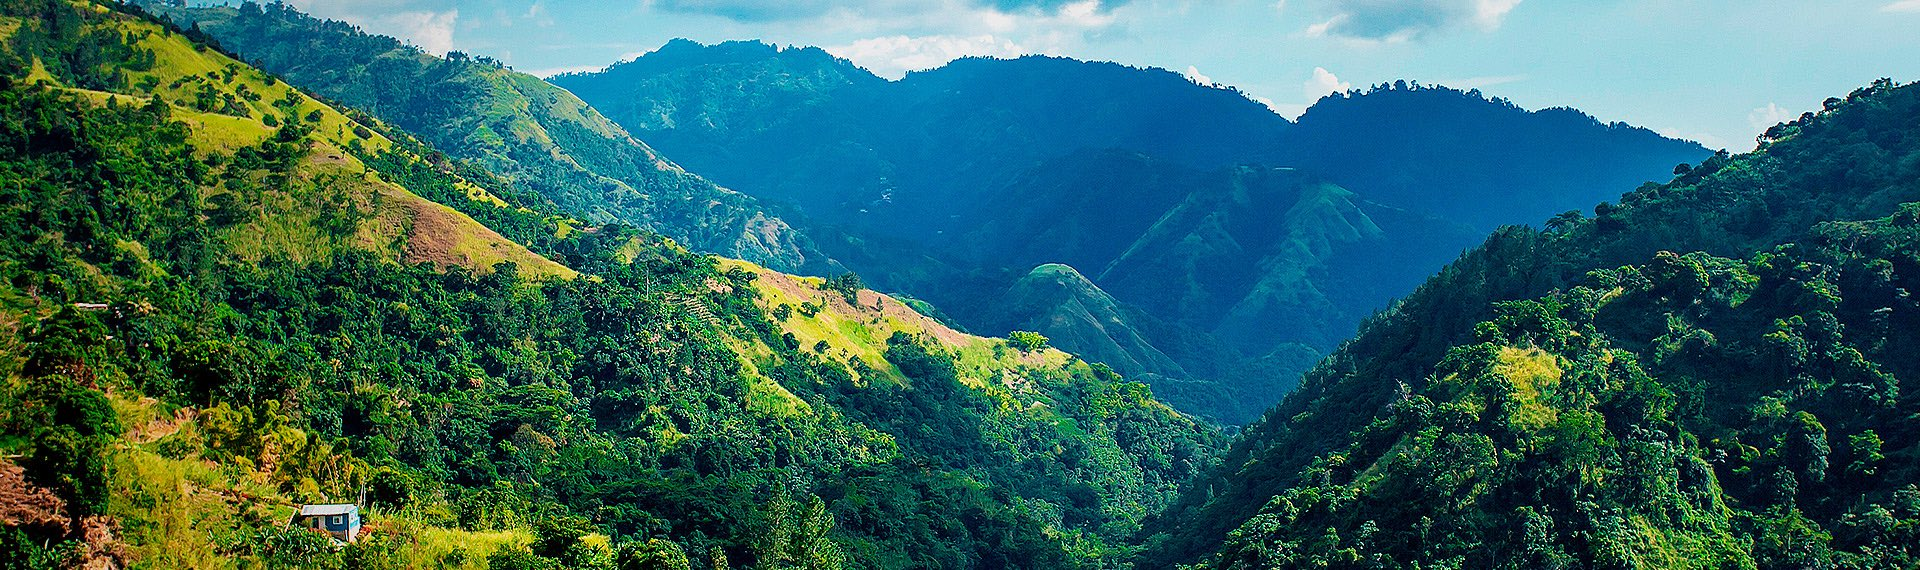 Admire the spectacular landscapes of the Blue Mountains Jamaica